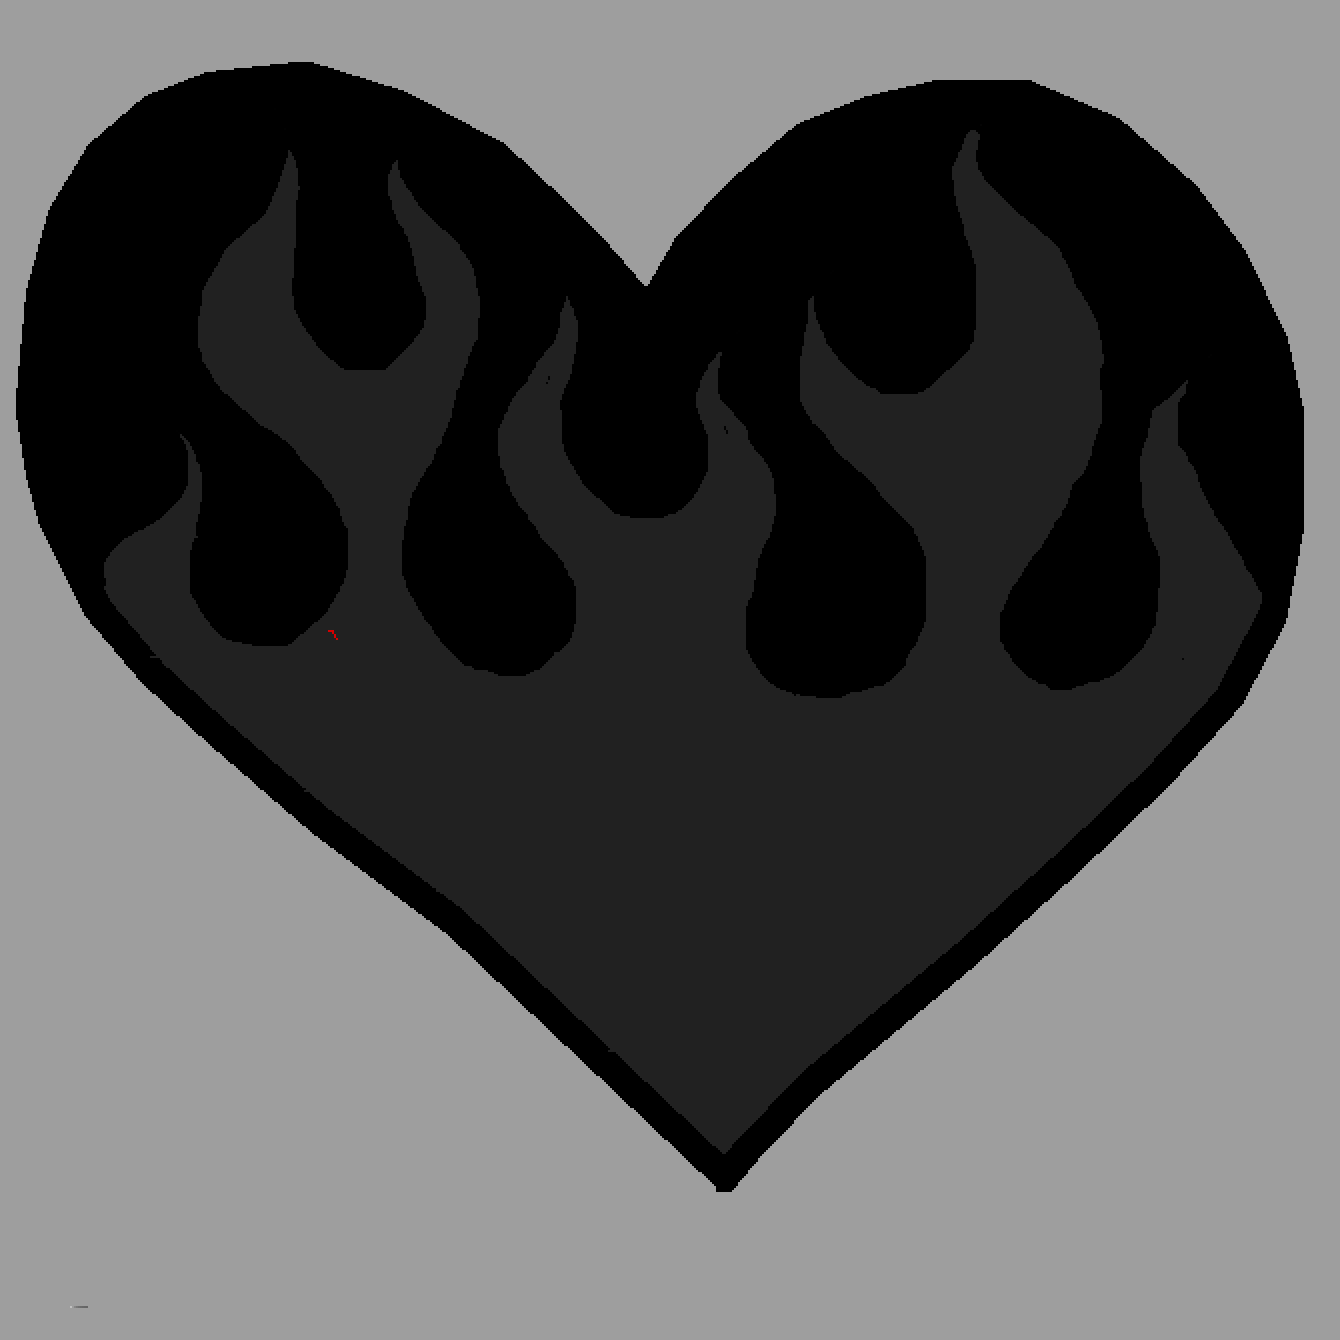 my heart the flames went out by katejohanna